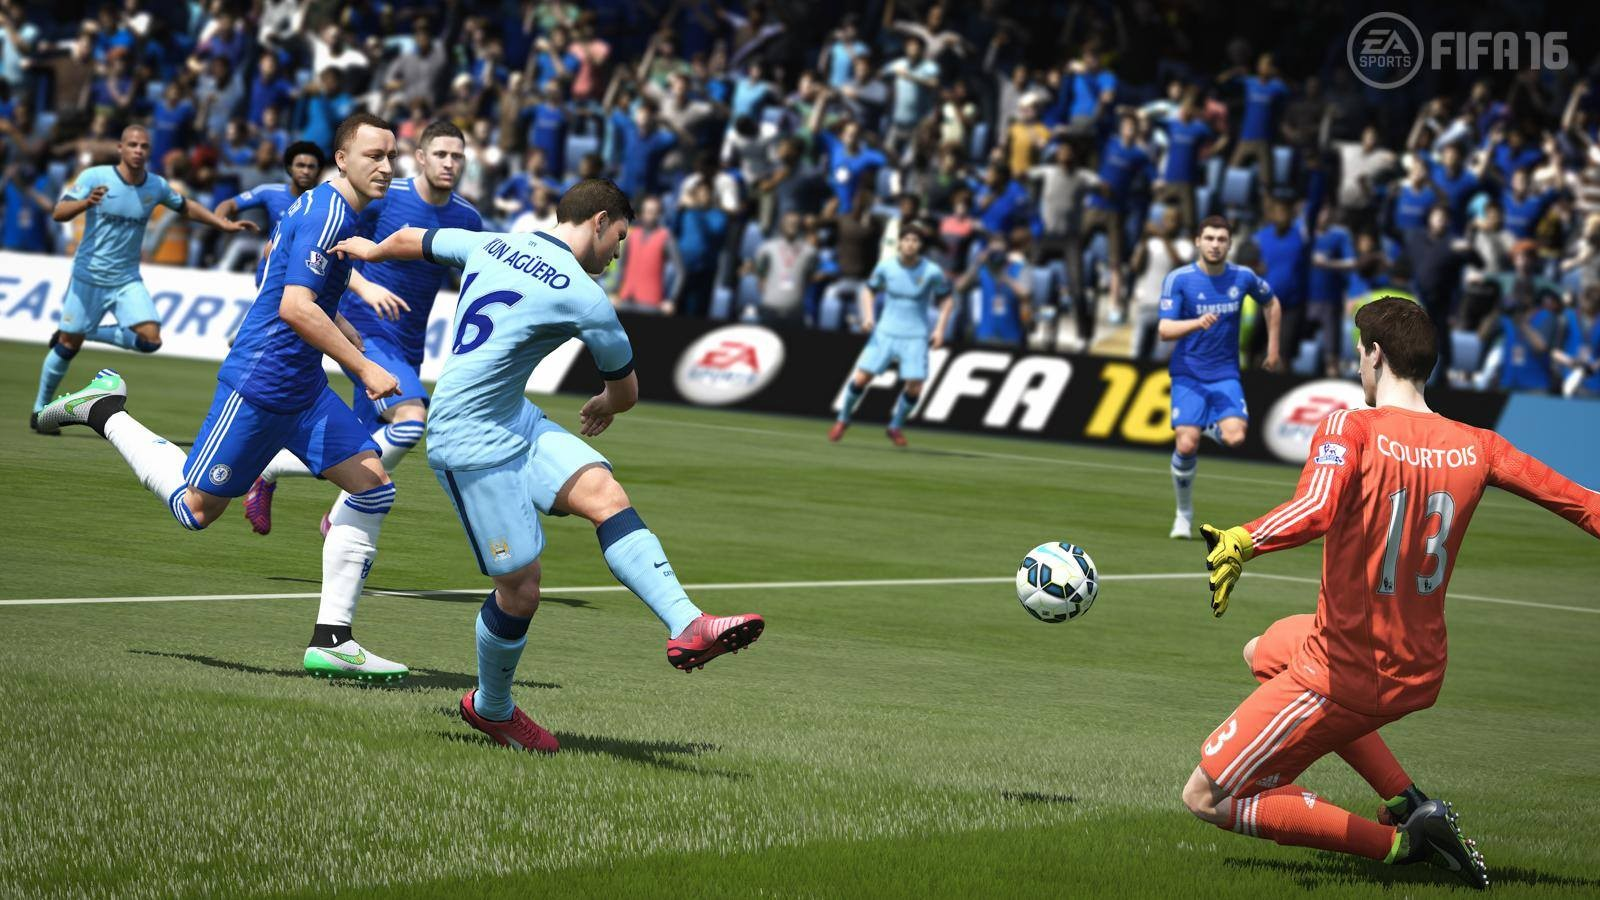 EA Sports Reveals FIFA 16 Cover Featuring Messi